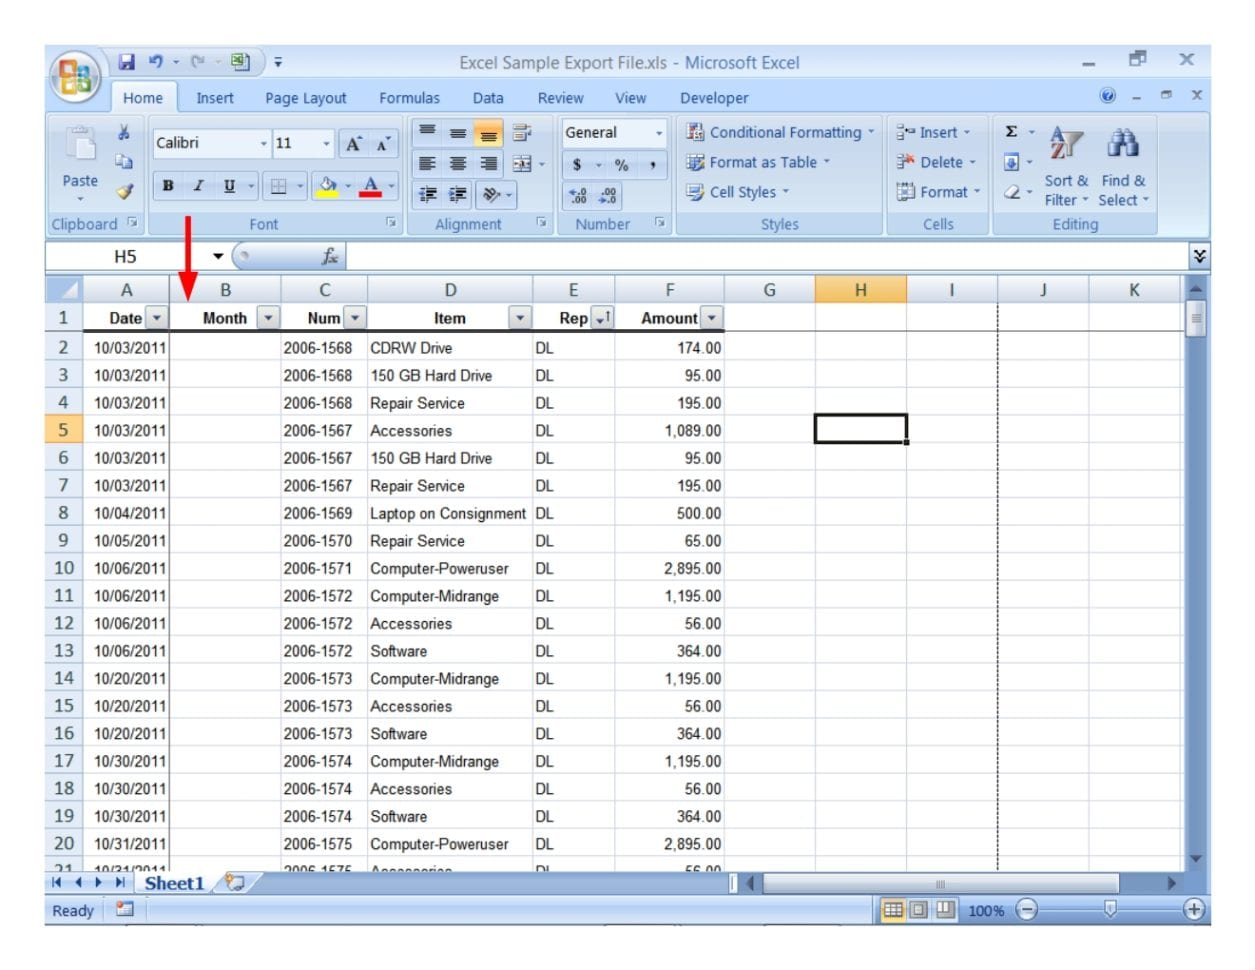 Excel Spreadsheet Examples For Students Free Personal Data Sheet Template Sample Excel Sheet With Student Data Sample Excel Spreadsheet Templates Sample Excel Spreadsheet Data For Sales Data Sheet Templates Word Free Data Sheets Templates  Excel Spreadsheet Examples For Students Data Spreadsheet Template Spreadsheet Templates for Busines